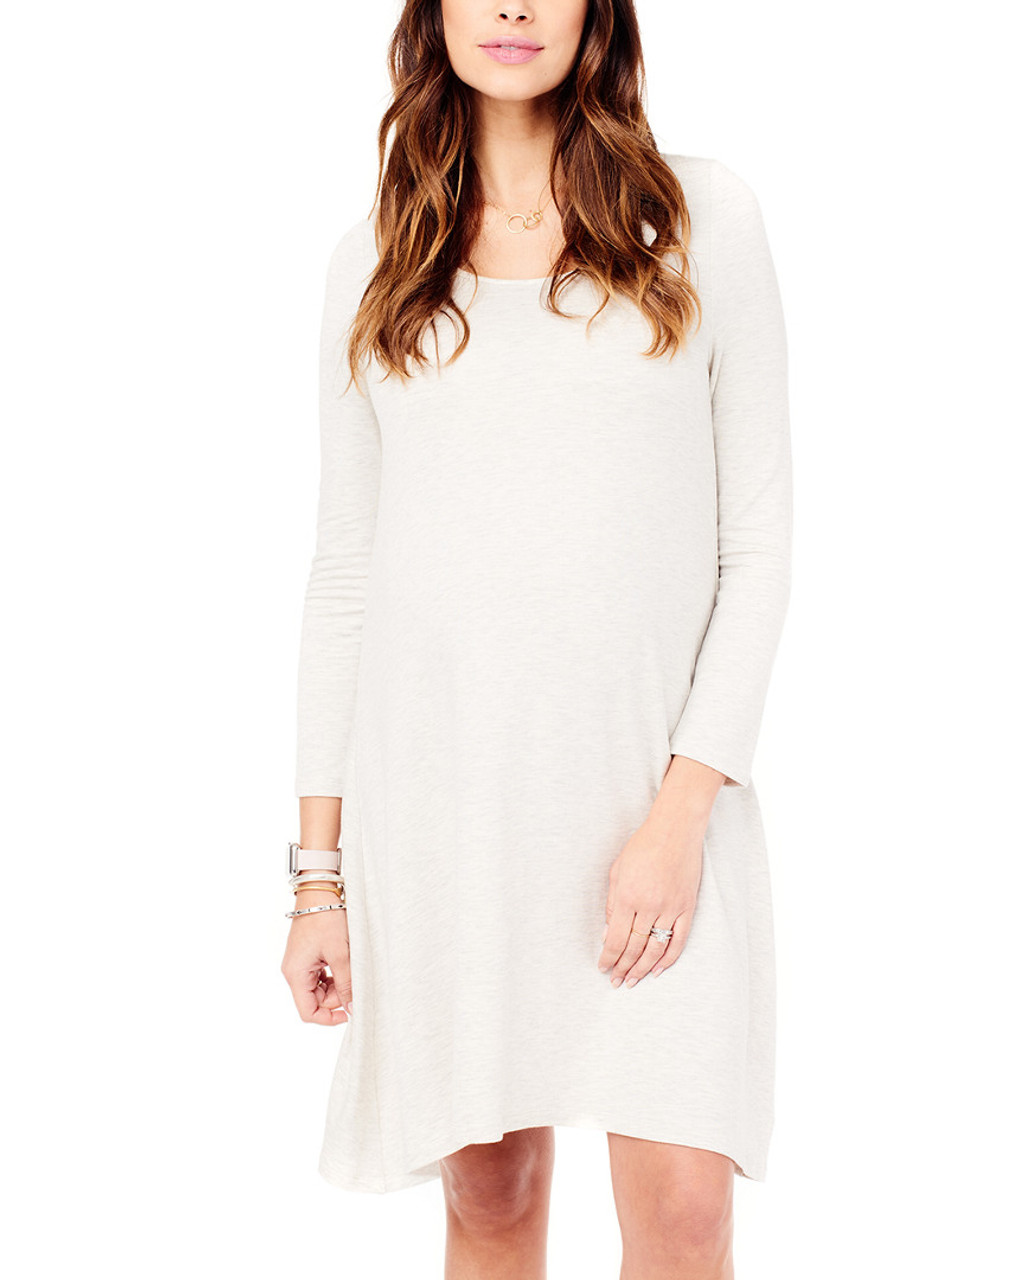 809dccc10586c Ingrid & Isabel Maternity Long Sleeve Trapeze Dress~1050009075 ...